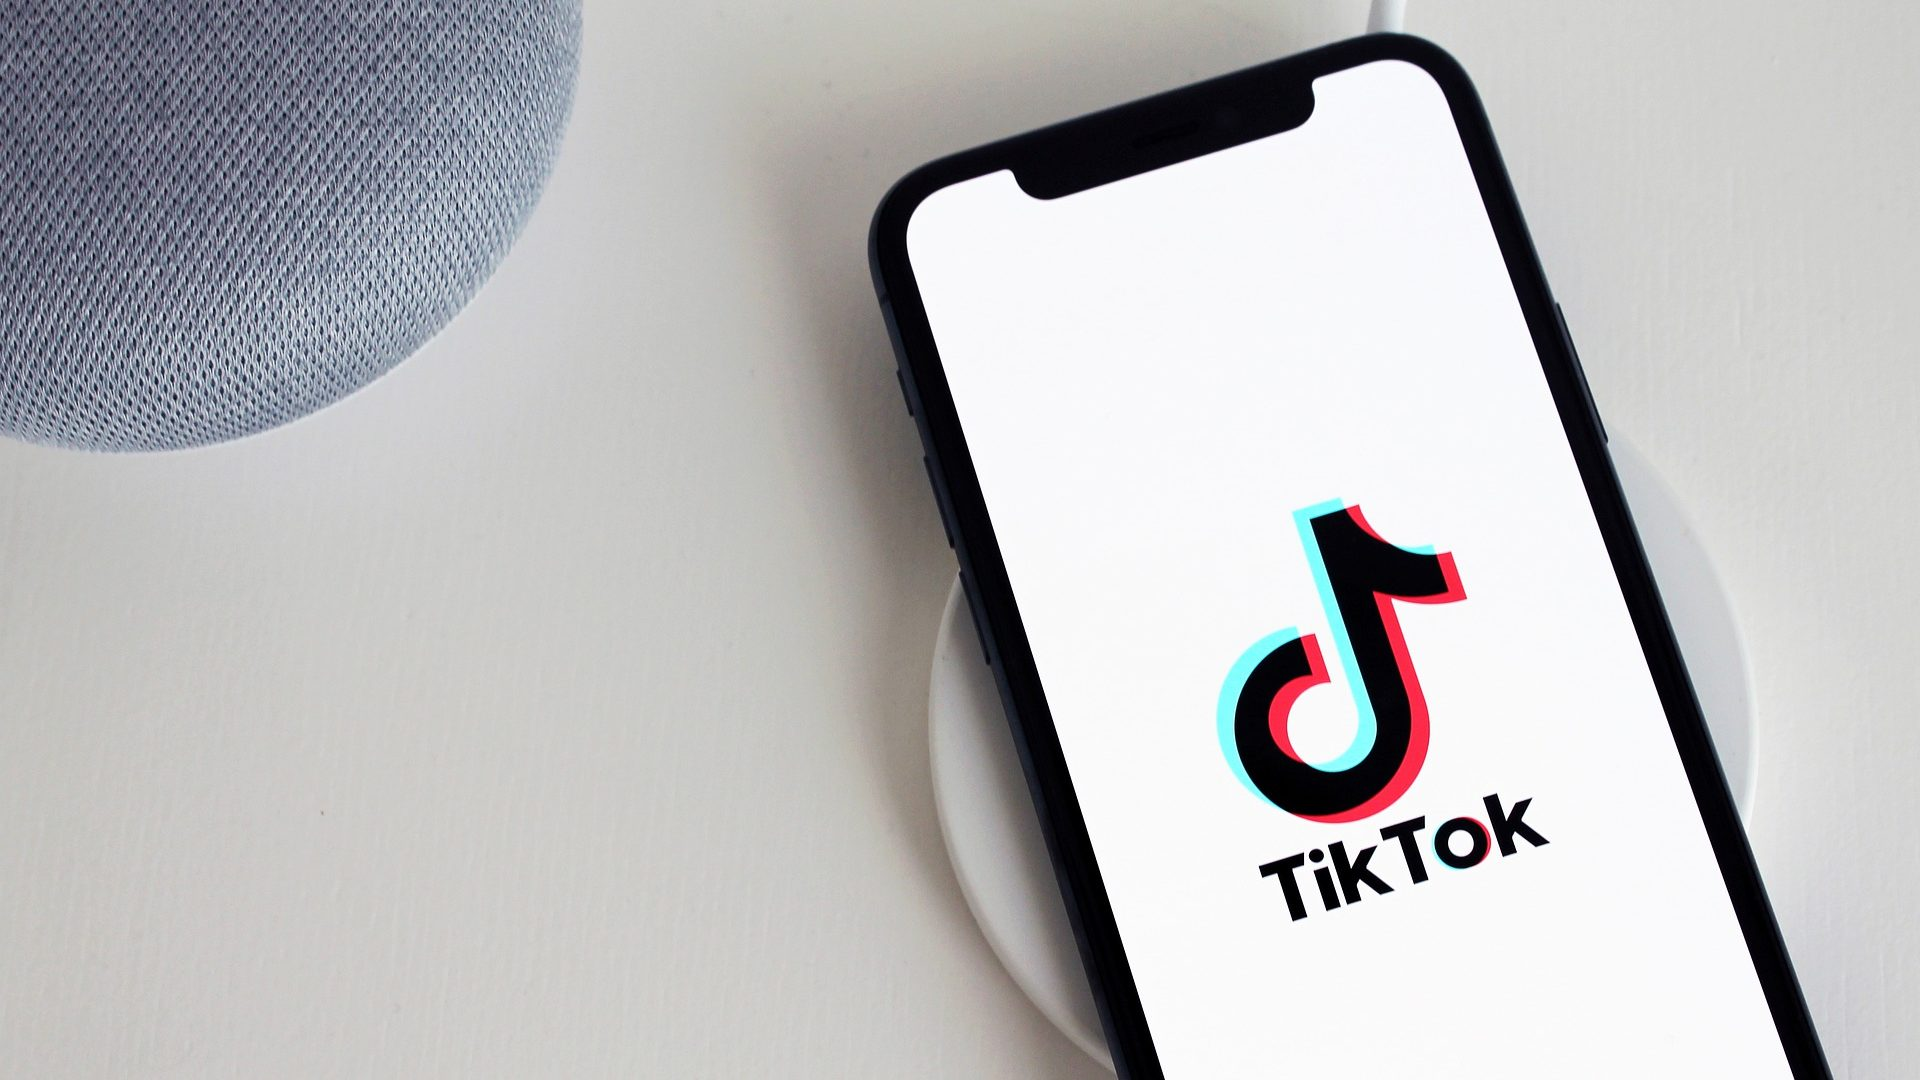 Tiktok on phone